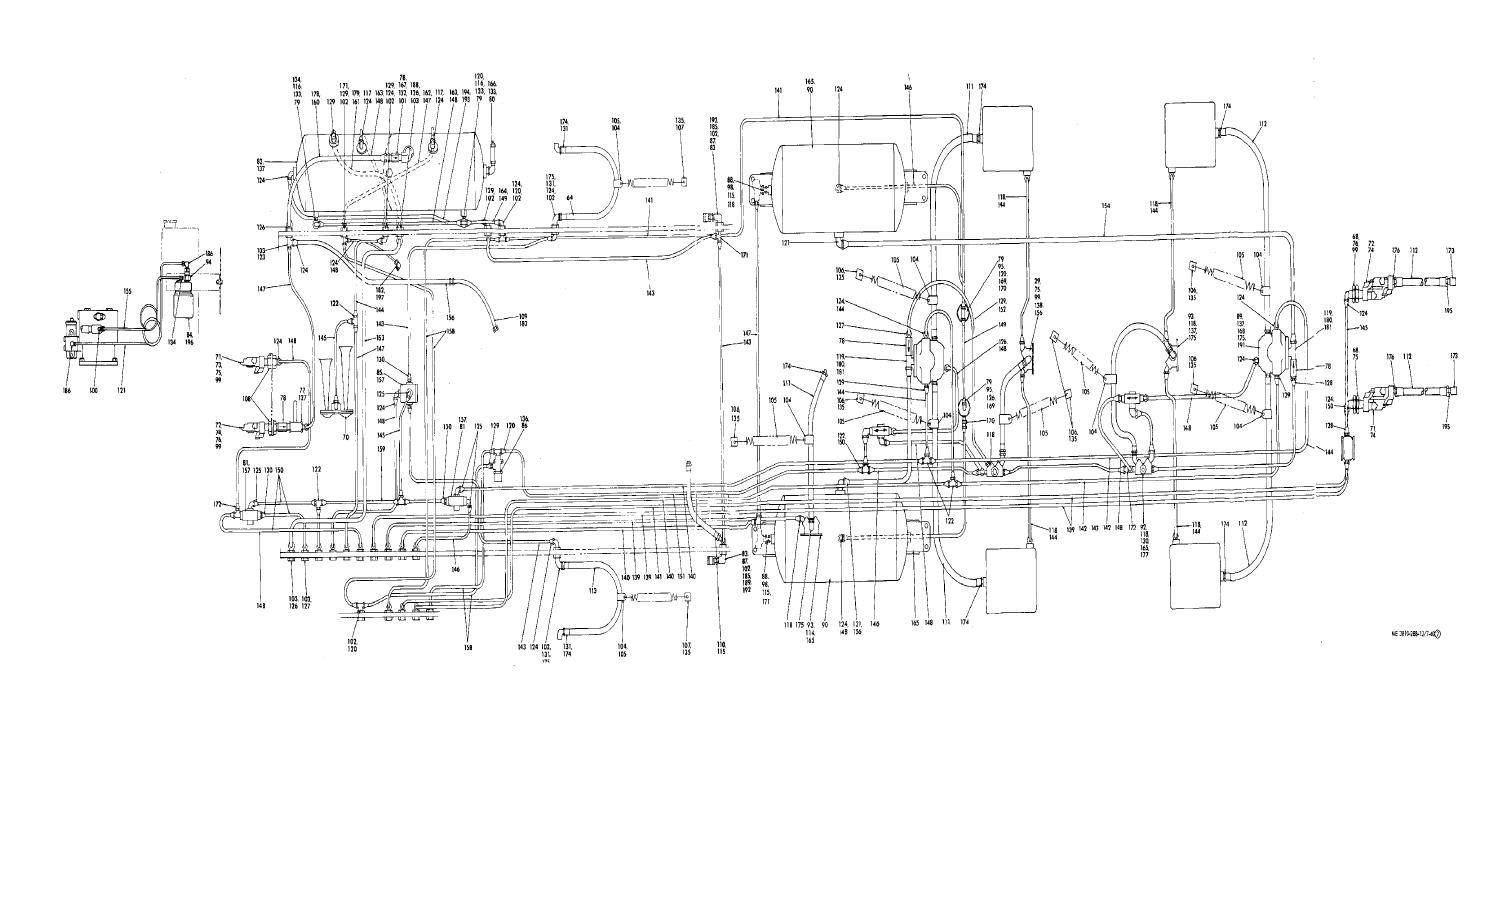 Peterbilt Engine Diagram together with Kenworth Rear Cross Member Cover P 7510 besides Peterbilt Air Trac Suspension Parts Diagram besides 04 Cbr 600rr Wiring Diagram in addition 4700 International Truck Wiring Diagrams. on kenworth w900l